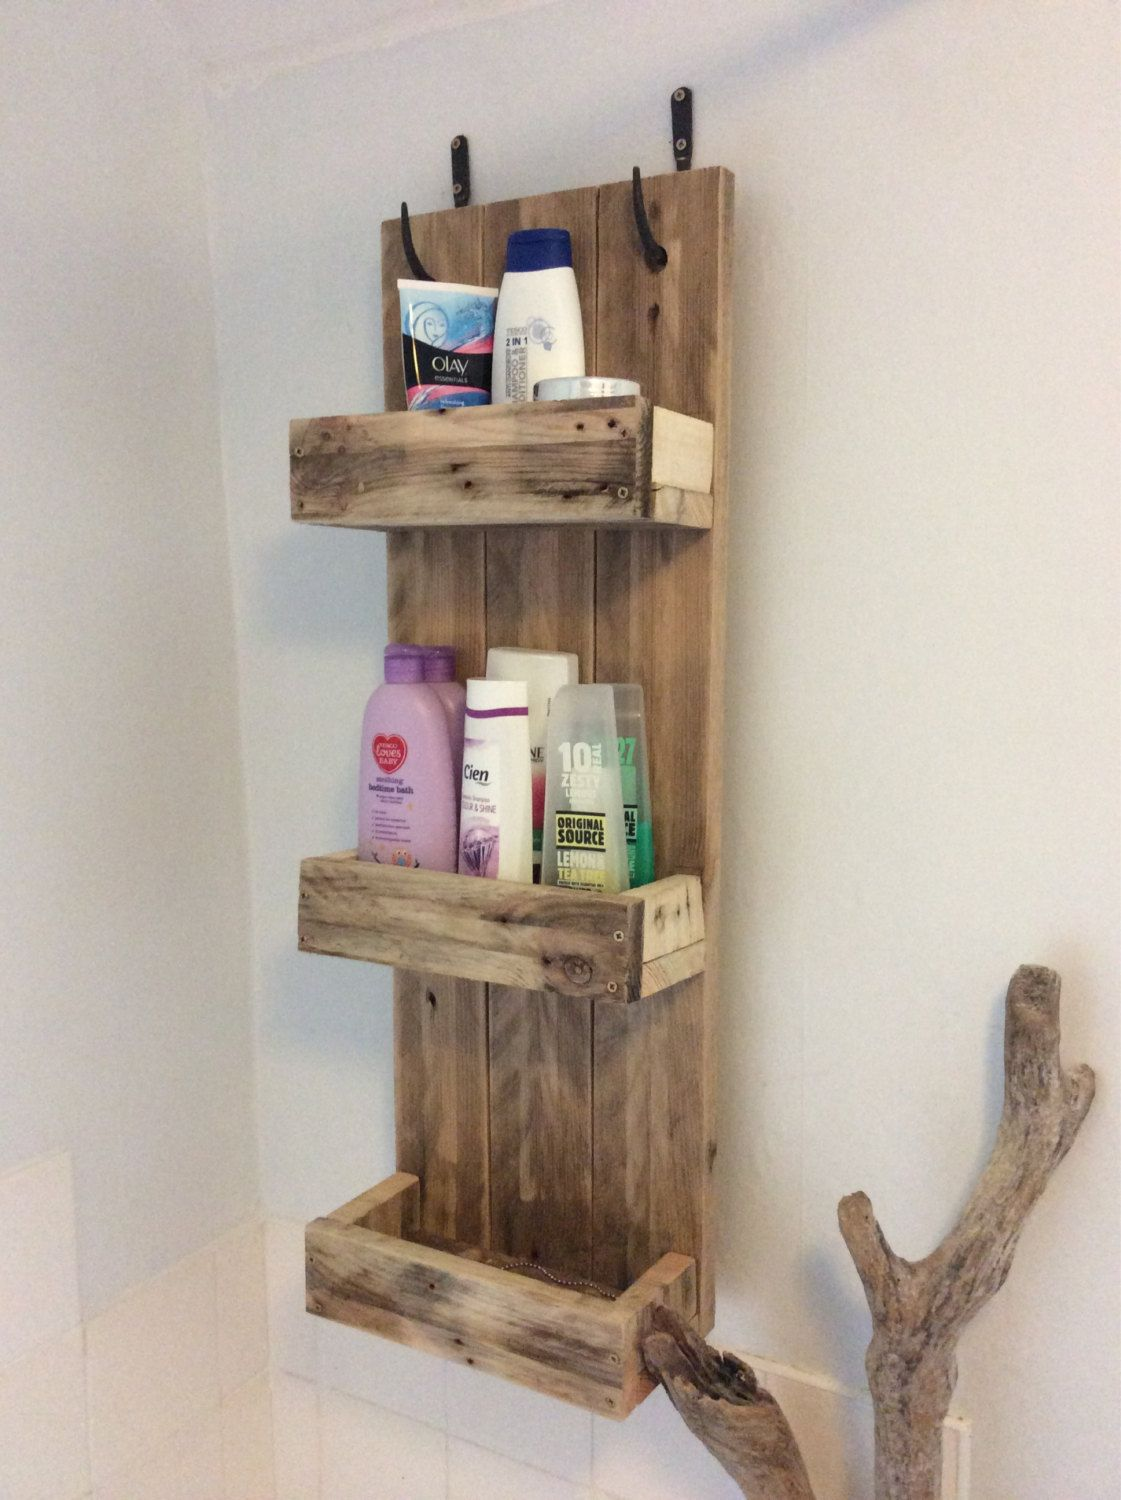 Fullsize Of Wooden Bathroom Shelf